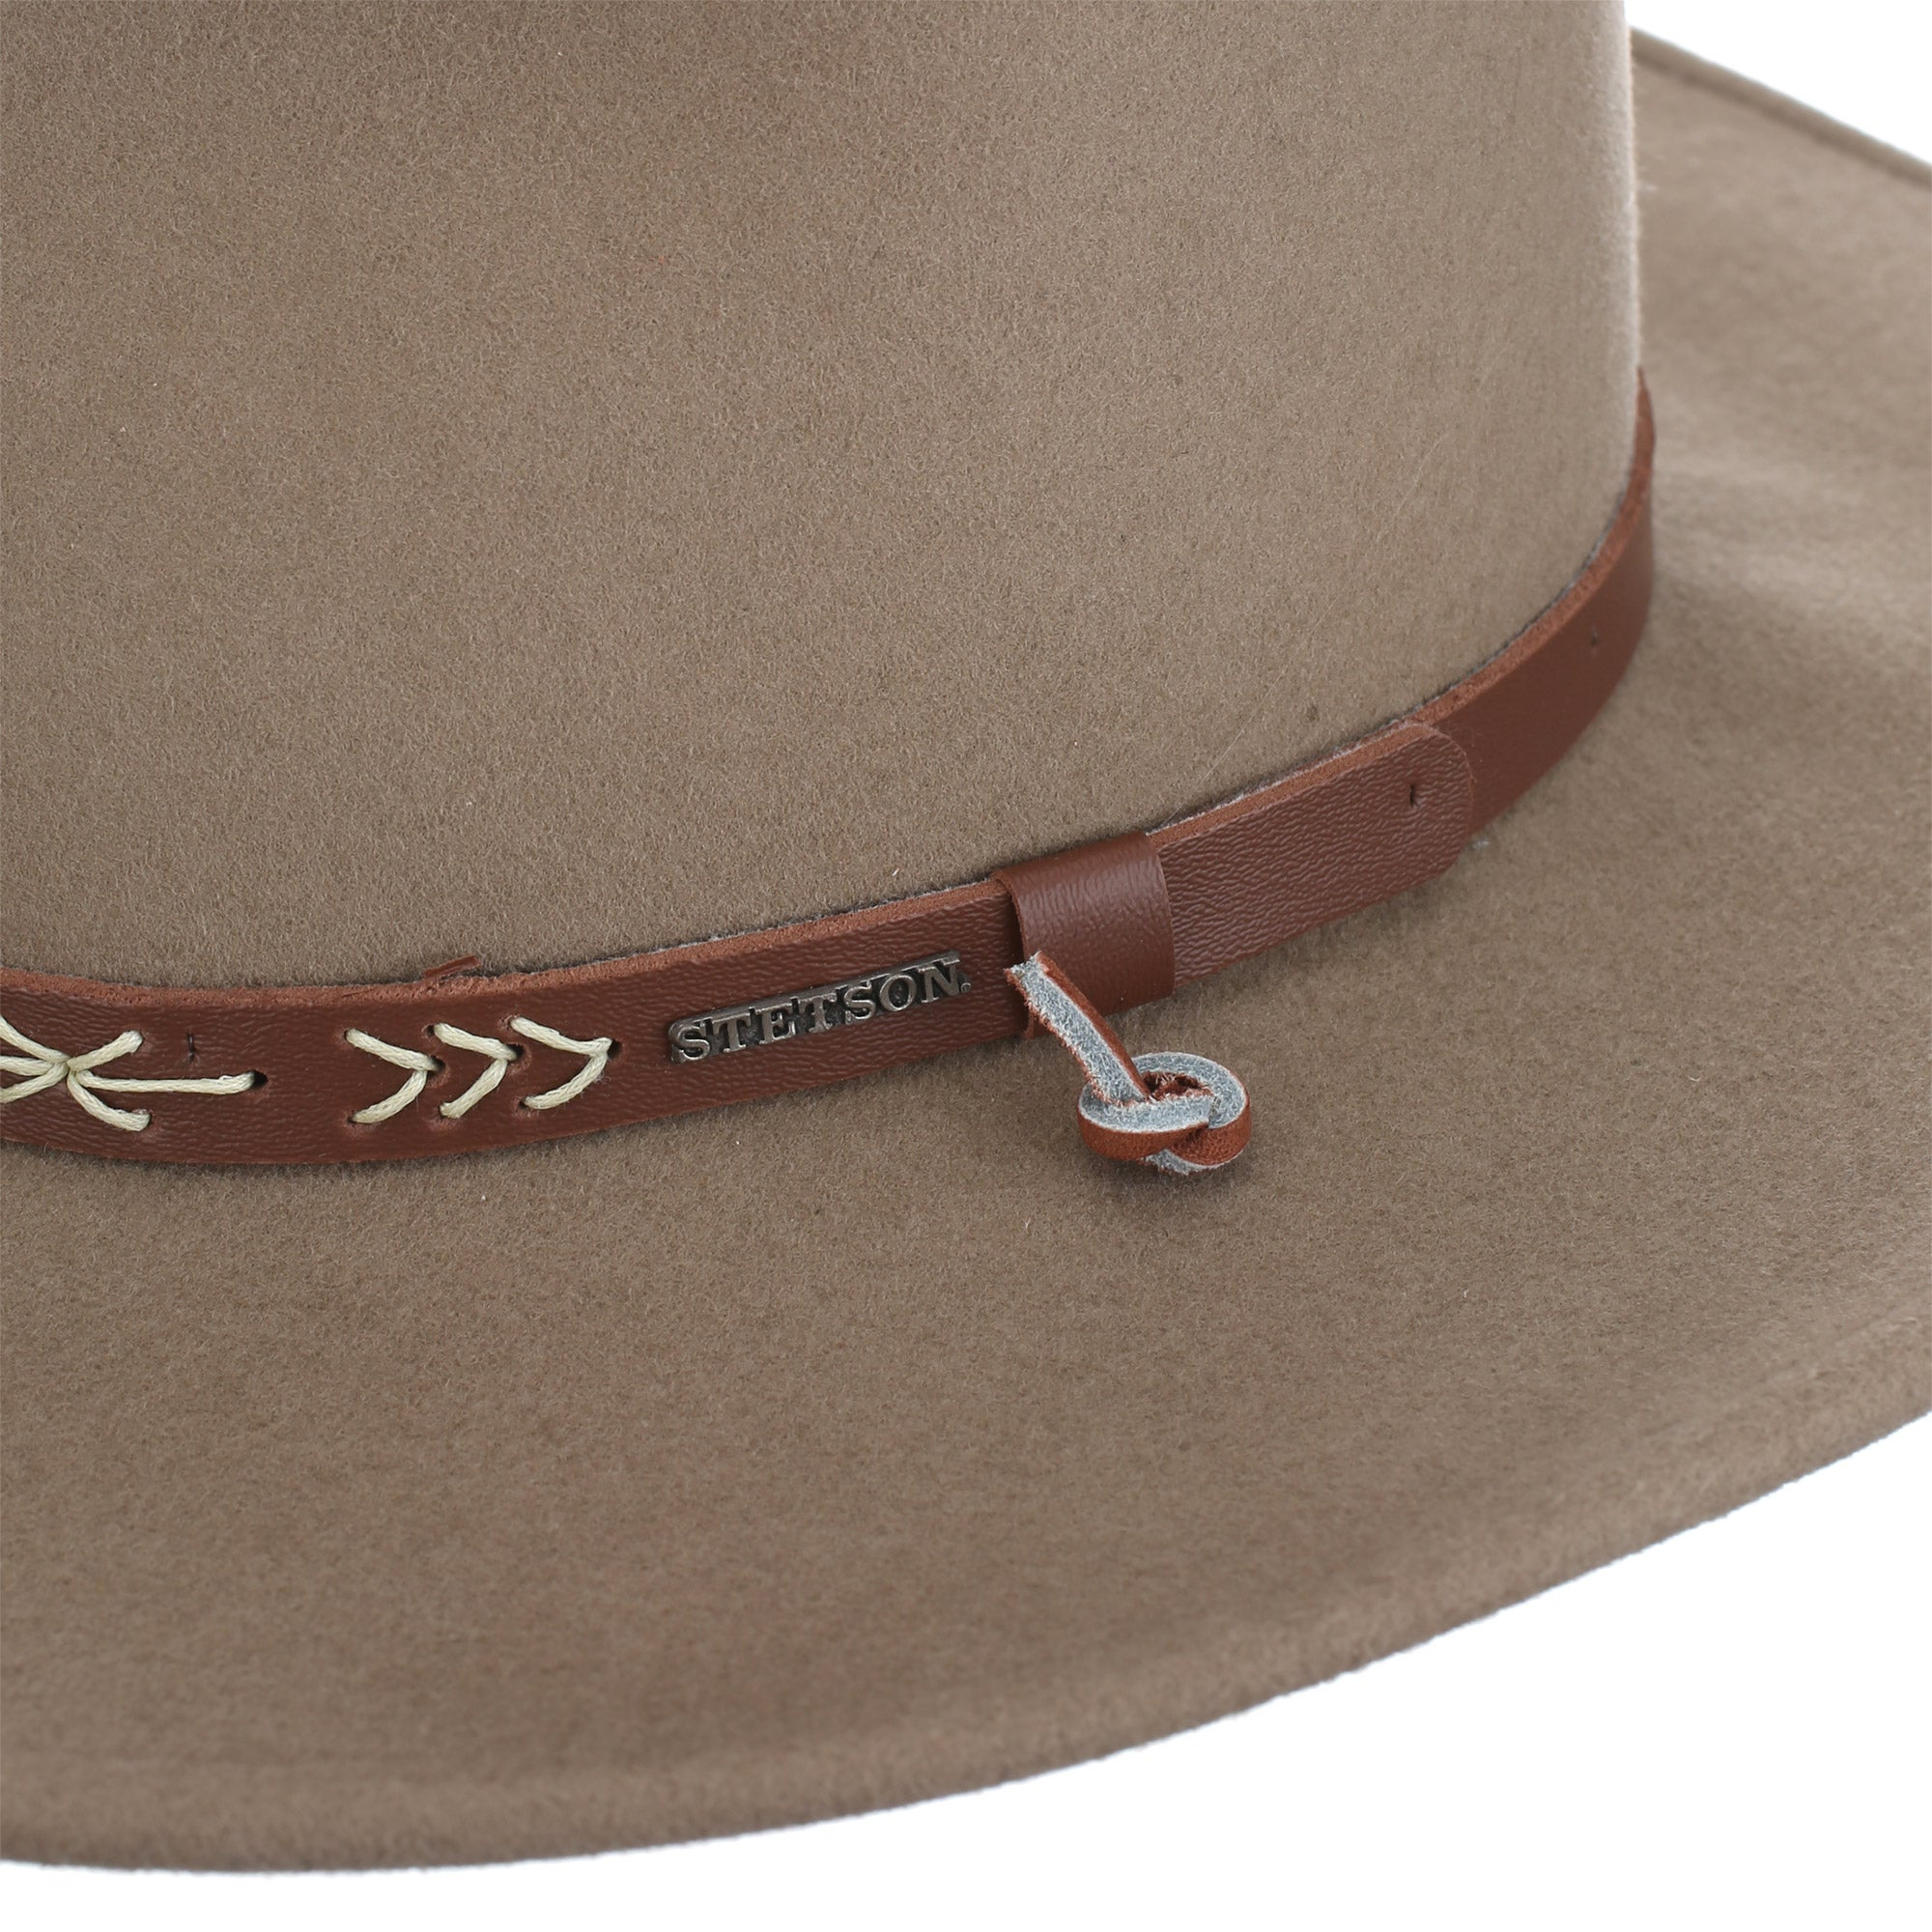 Stetson Santa Fe Crushable Outdoor Hat w Chin Strap - Riding Warehouse f6208085bf3